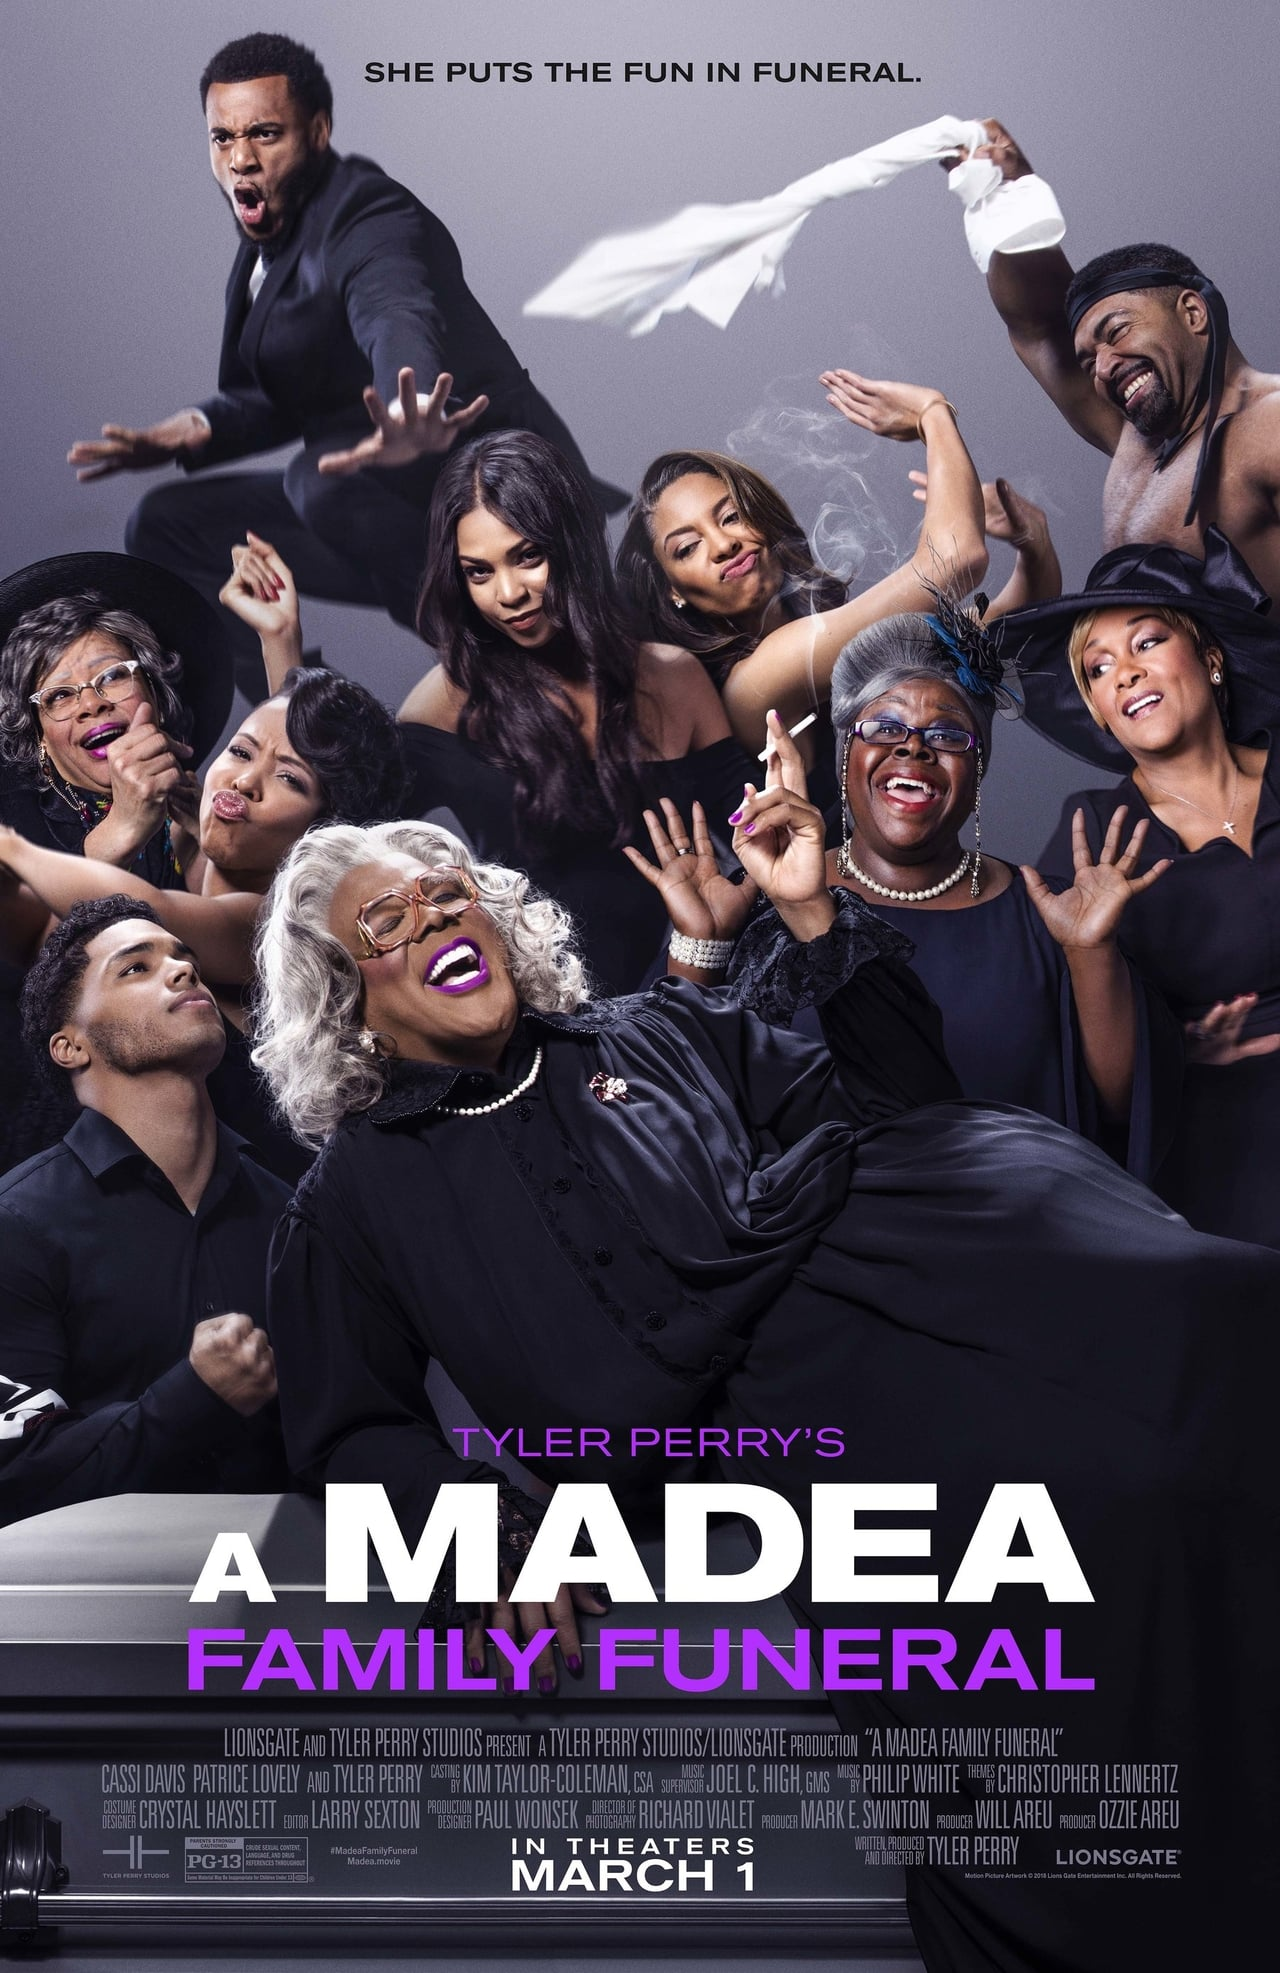 A Madea Family Funeral image